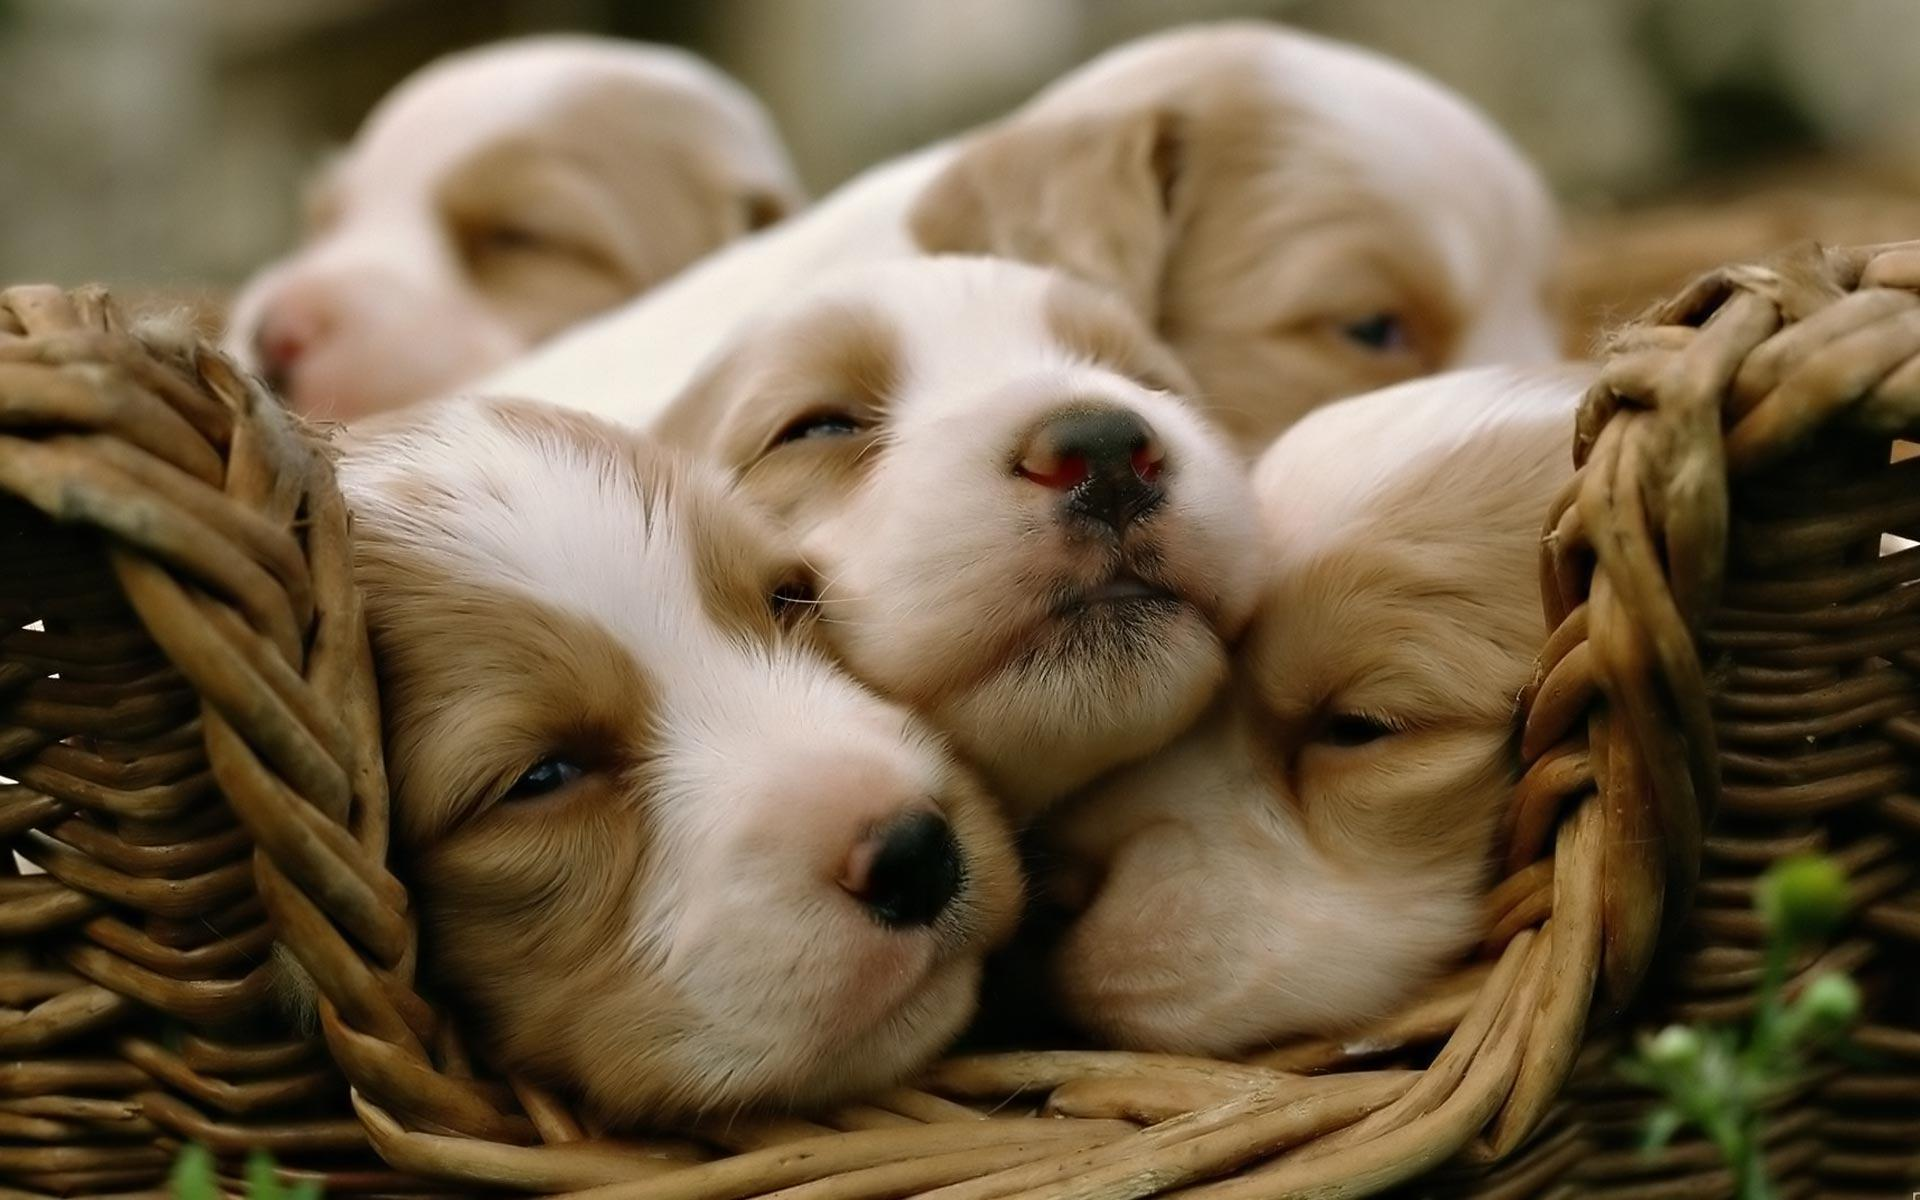 cute puppy wallpaper desktop 30118 hd wallpapers in cute